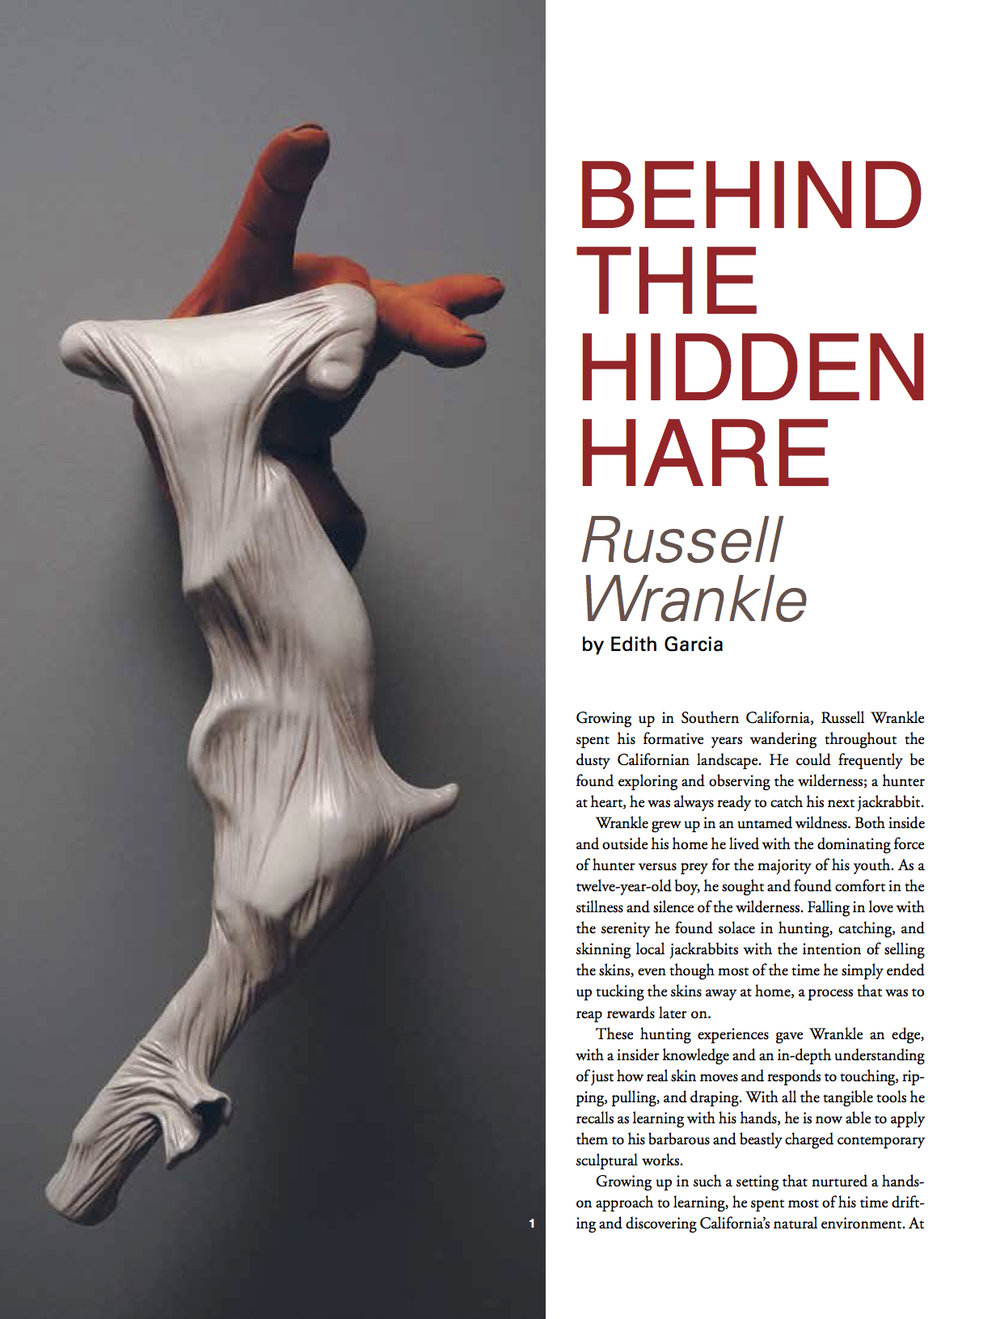 Ceramics Monthly - Author of Behind the Hidden Hare, Russell WrankleGrowing up in Southern California, Russell Wrankle spent his formative years wandering throughout the dusty Californian landscape. He could frequently be found exploring and observing the wilderness; a hunter at heart, he was always ready to catch his next jackrabbit.Wrankle grew up in an untamed wildness. Both inside and outside his home he lived with the dominating force of hunter versus prey for the majority of his youth. As a twelve-year-old boy, he sought and found comfort in the stillness and silence of the wilderness. Falling in love with the serenity he found solace in hunting, catching, and skinning local jackrabbits with the intention of selling the skins, even though most of the time he simply ended up tucking the skins away at home, a process that was to reap rewards later on.These hunting experiences gave Wrankle an edge, with a insider knowledge and an in-depth understanding of just how real skin moves and responds to touching, ripping, pulling, and draping. With all the tangible tools he recalls as learning with his hands, he is now able to apply them to his barbarous and beastly charged contemporary sculptural works.